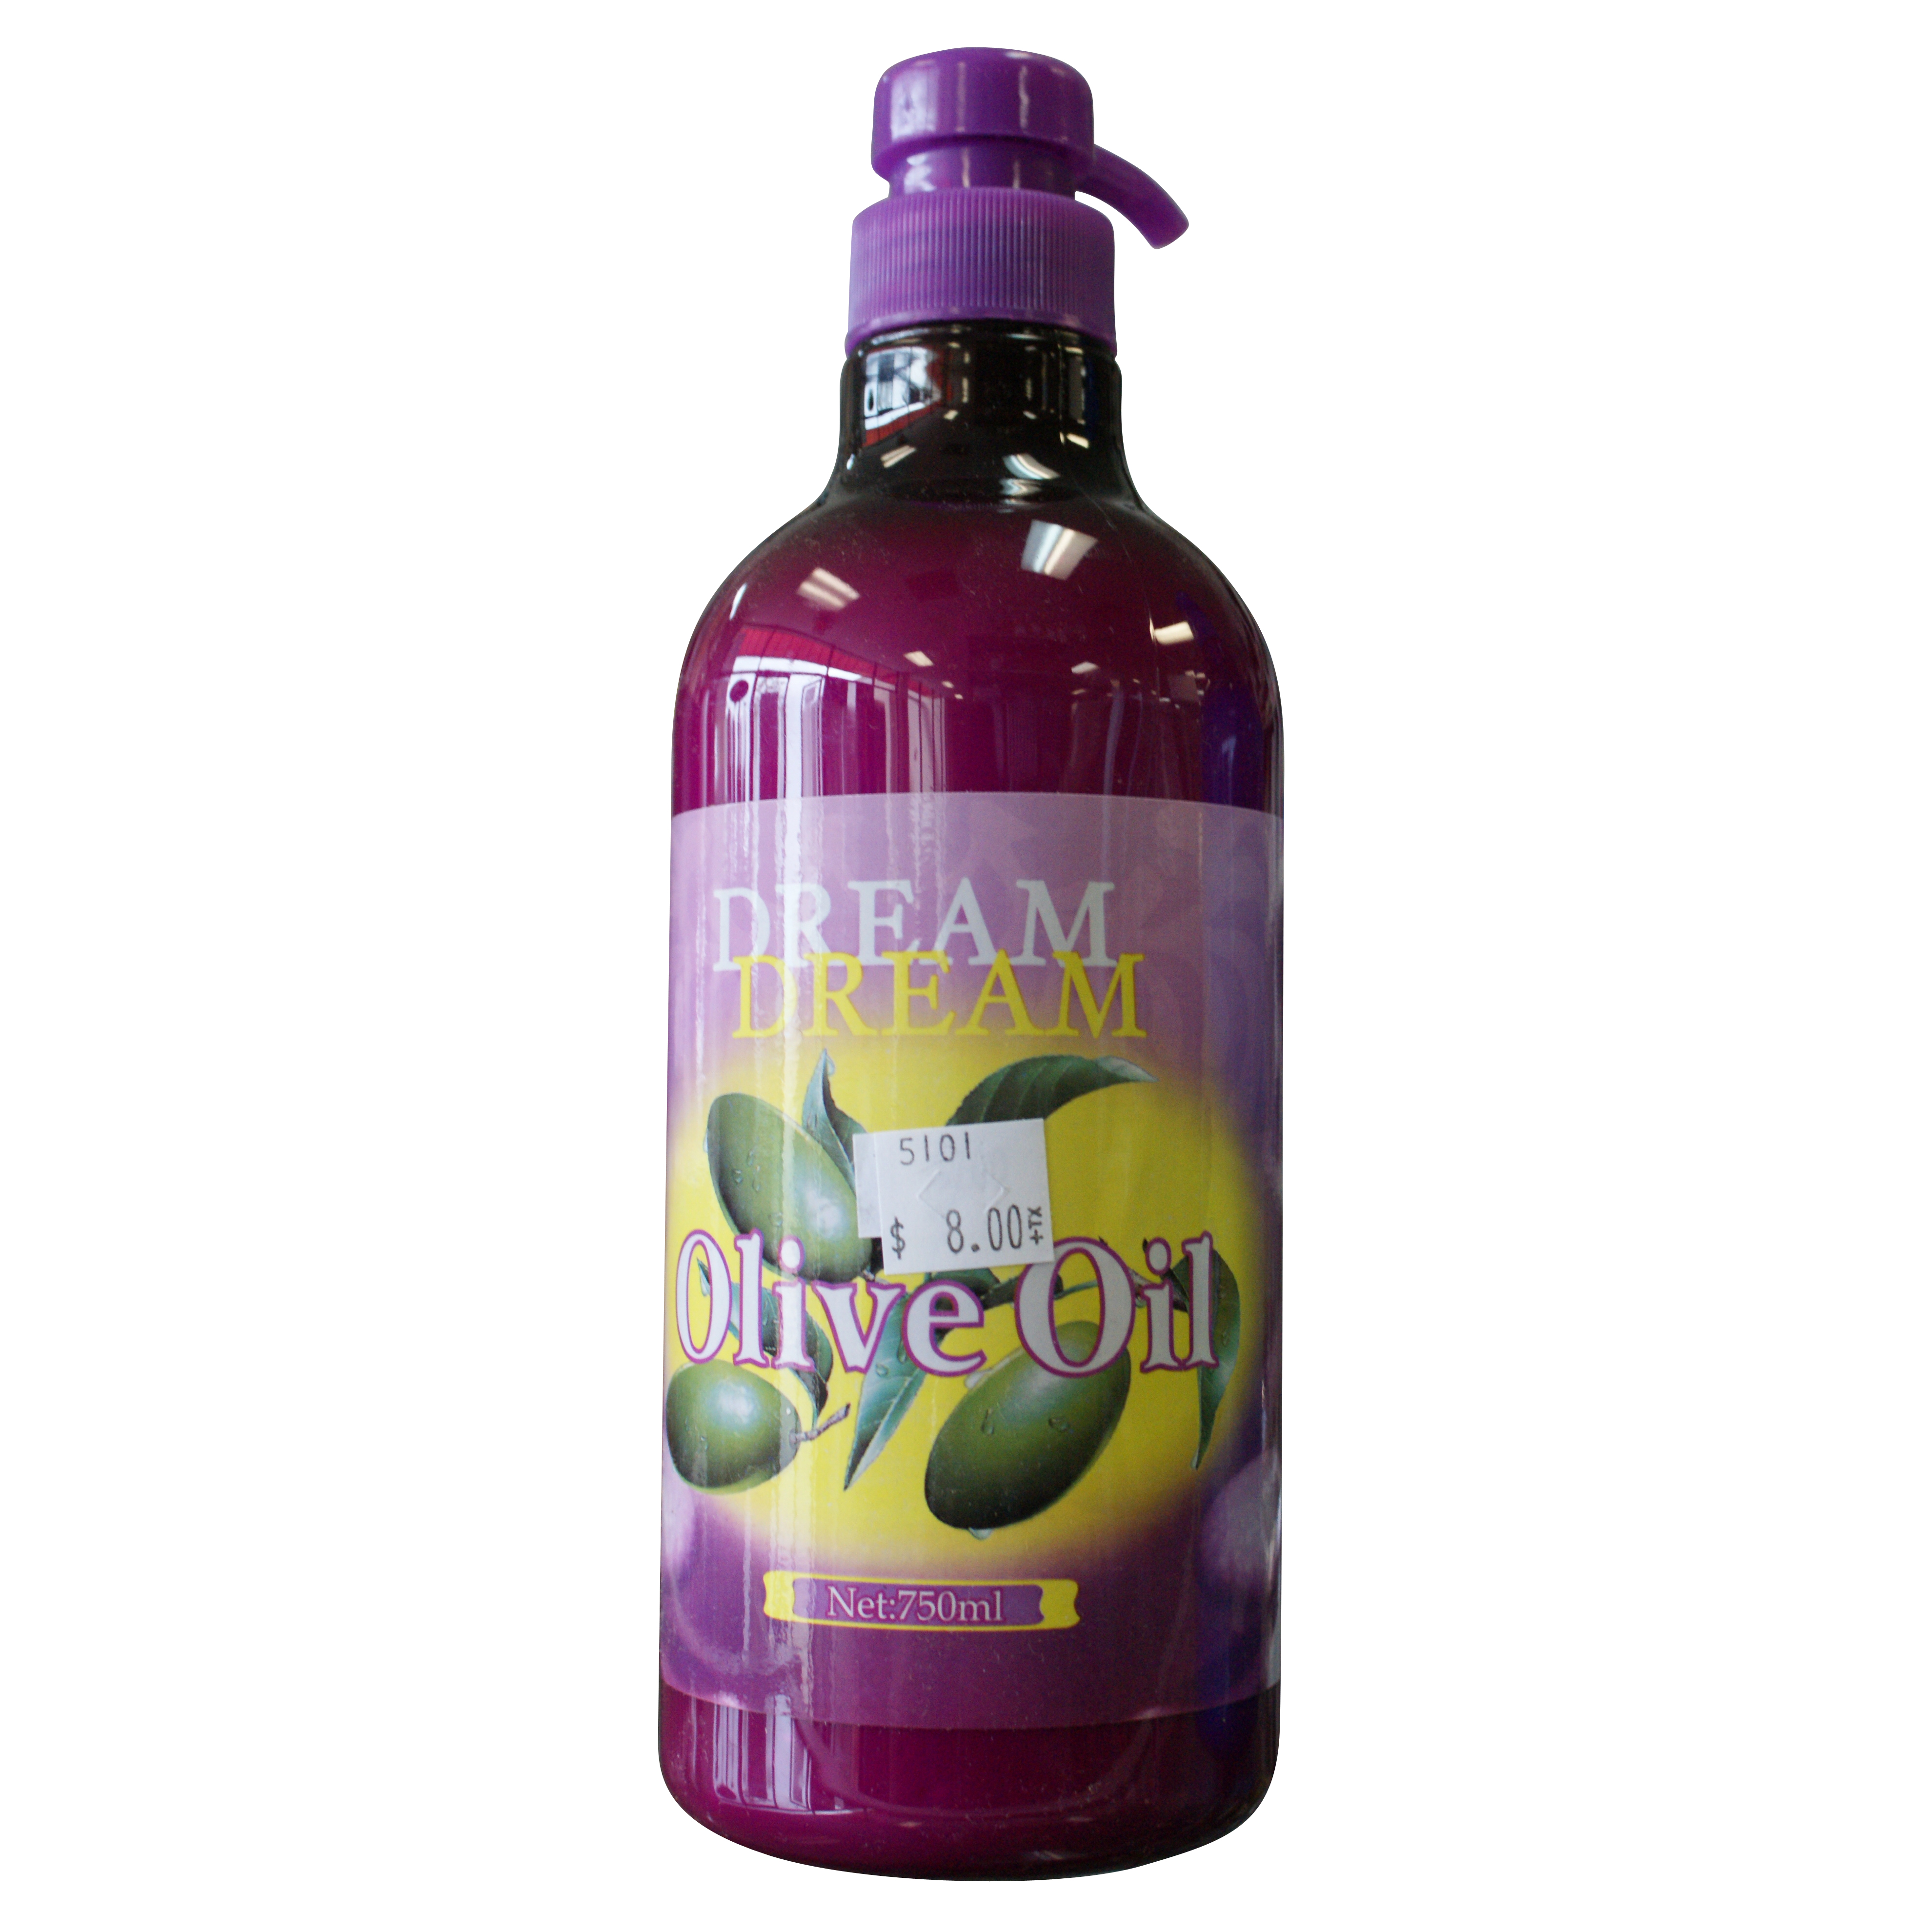 Dream Olive Oil Lotion 2- 26 oz